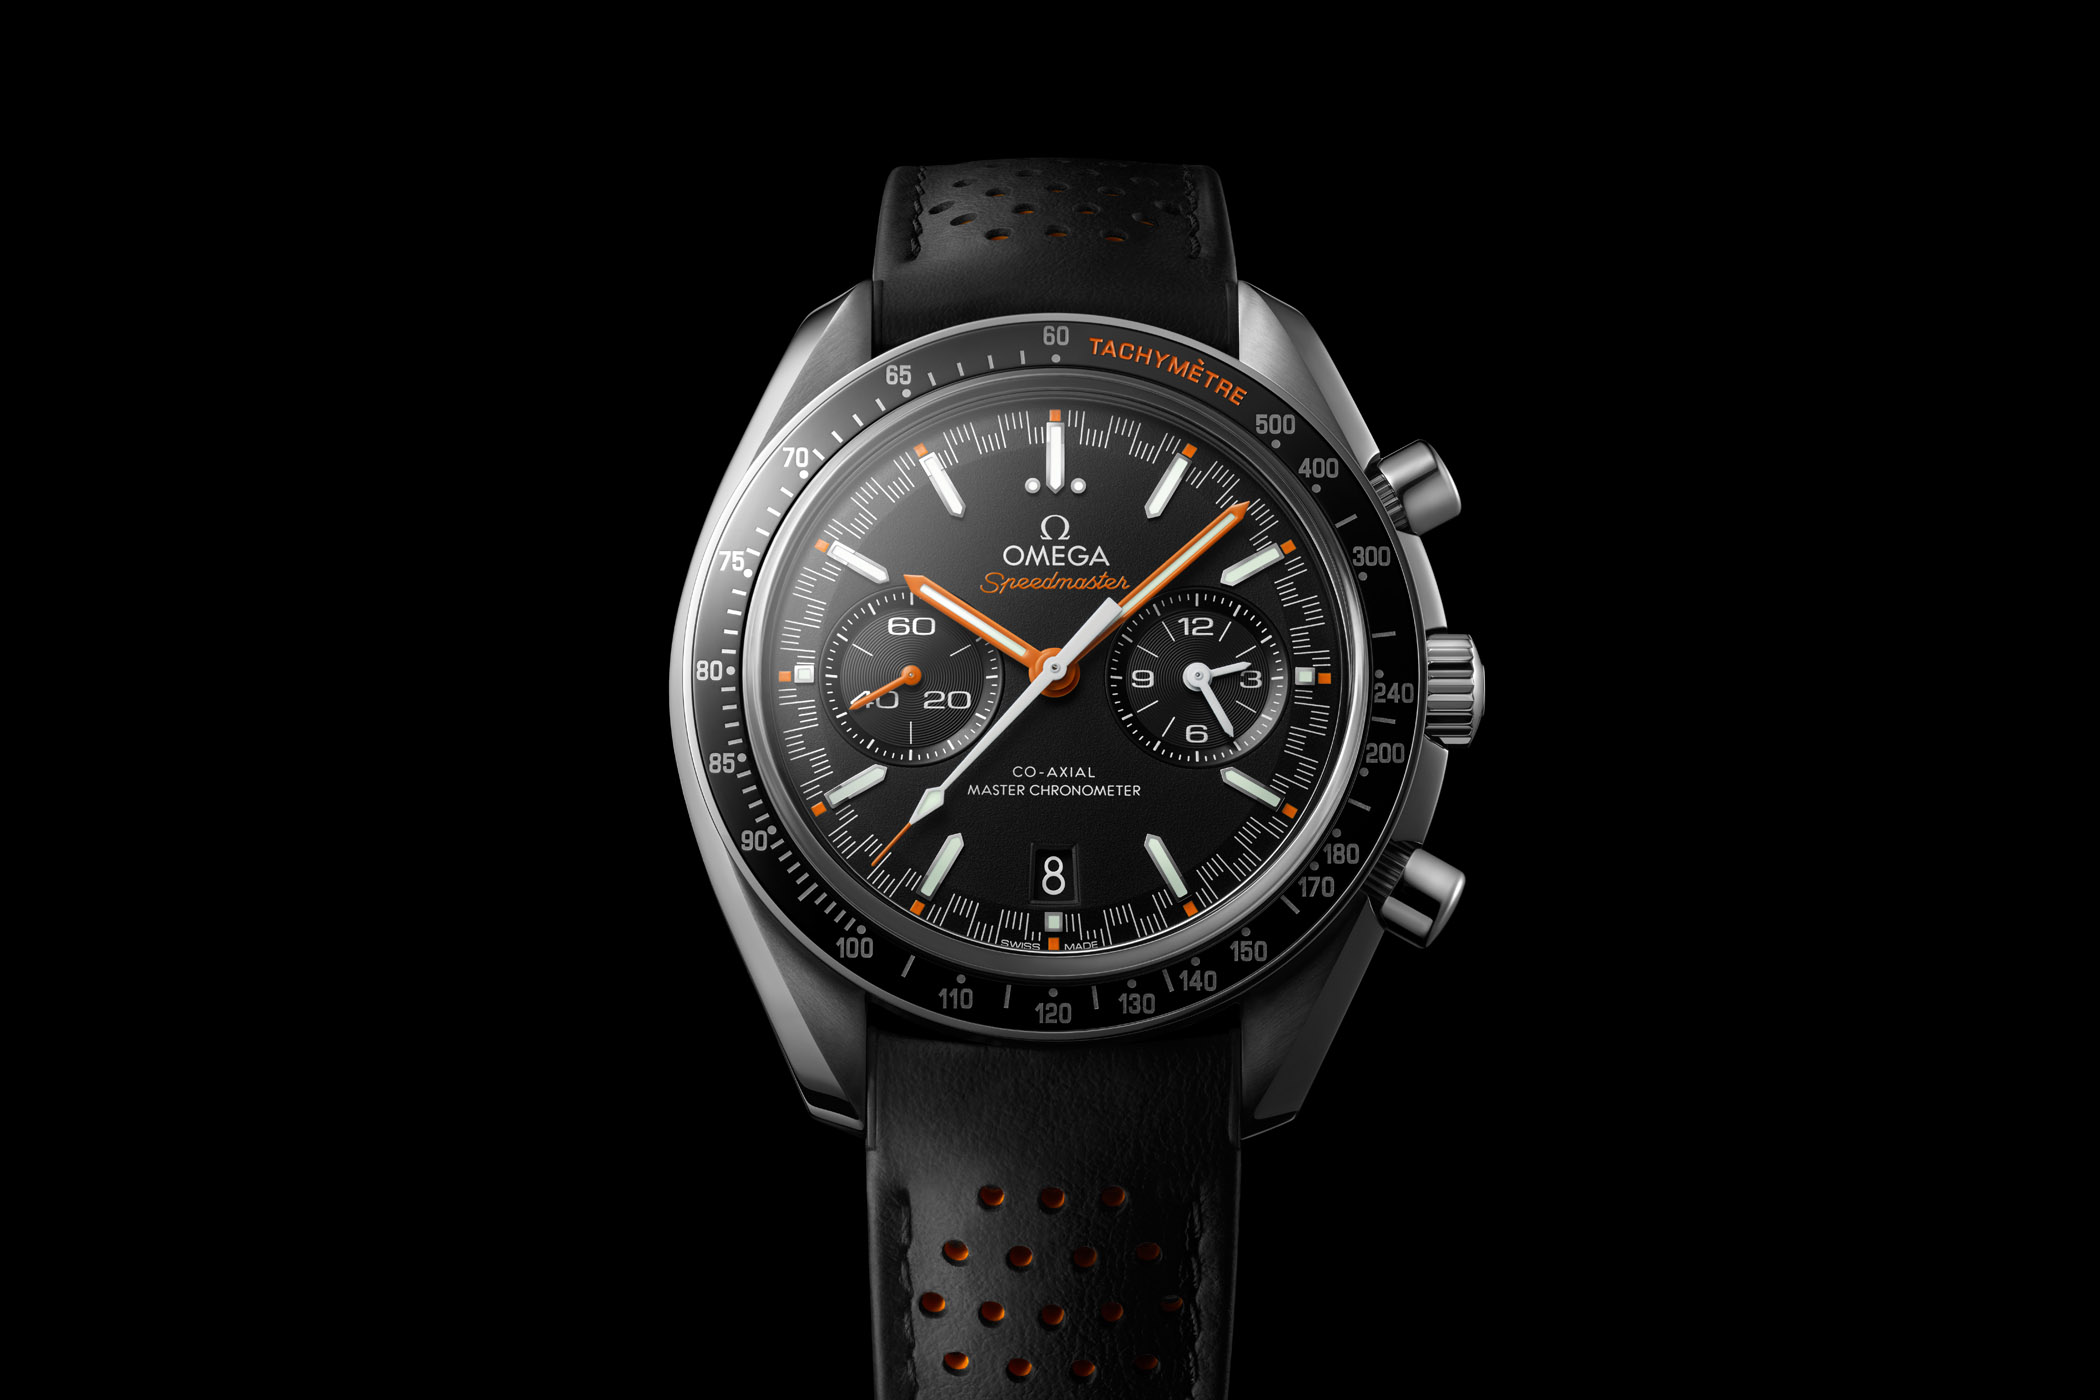 Omega Speedmaster Racing Master Chronometer - Baselworld 2017